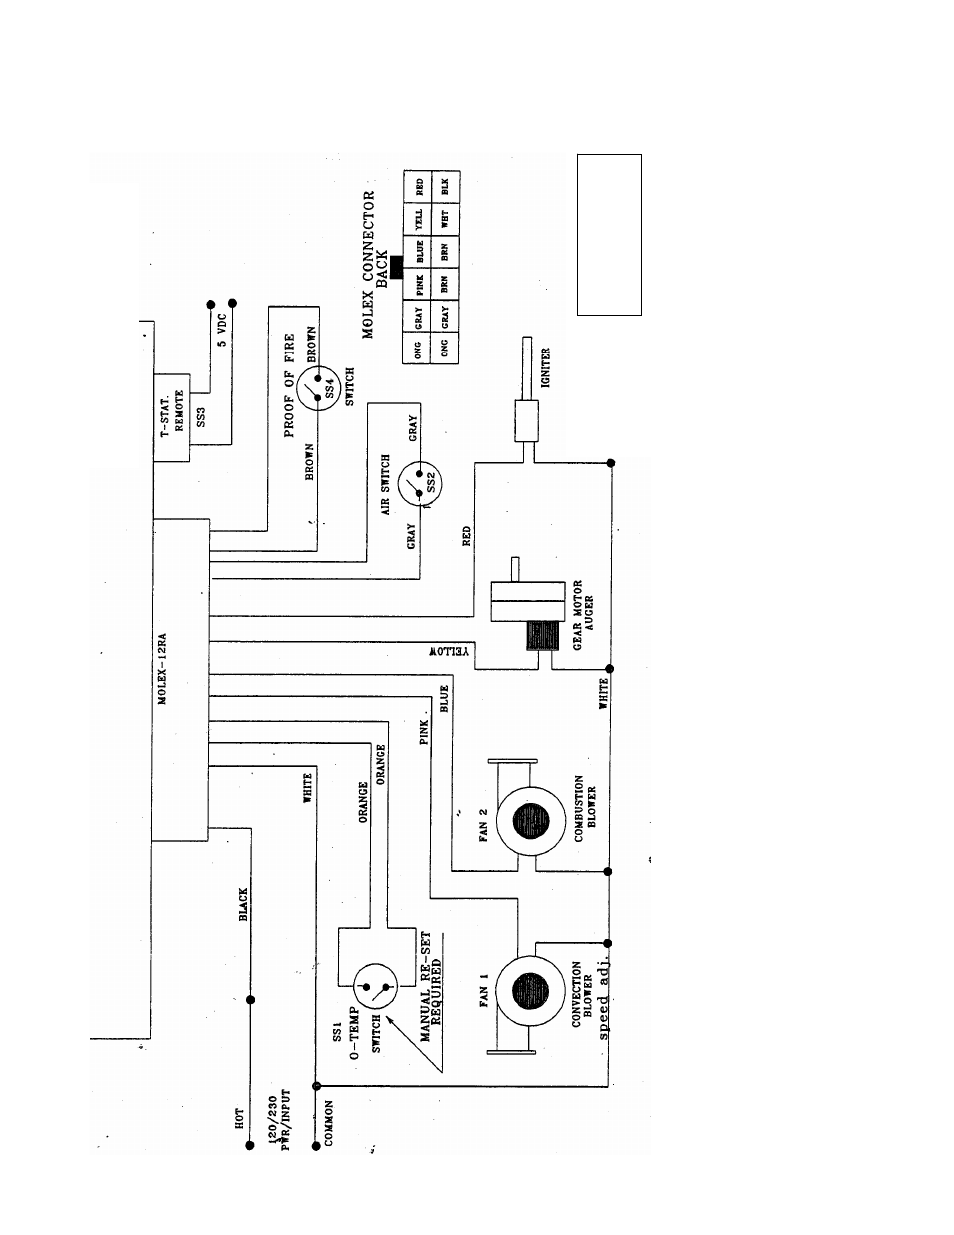 medium resolution of ac model wiring diagram warning dc model ddc 3000 wiringac model wiring diagram warning